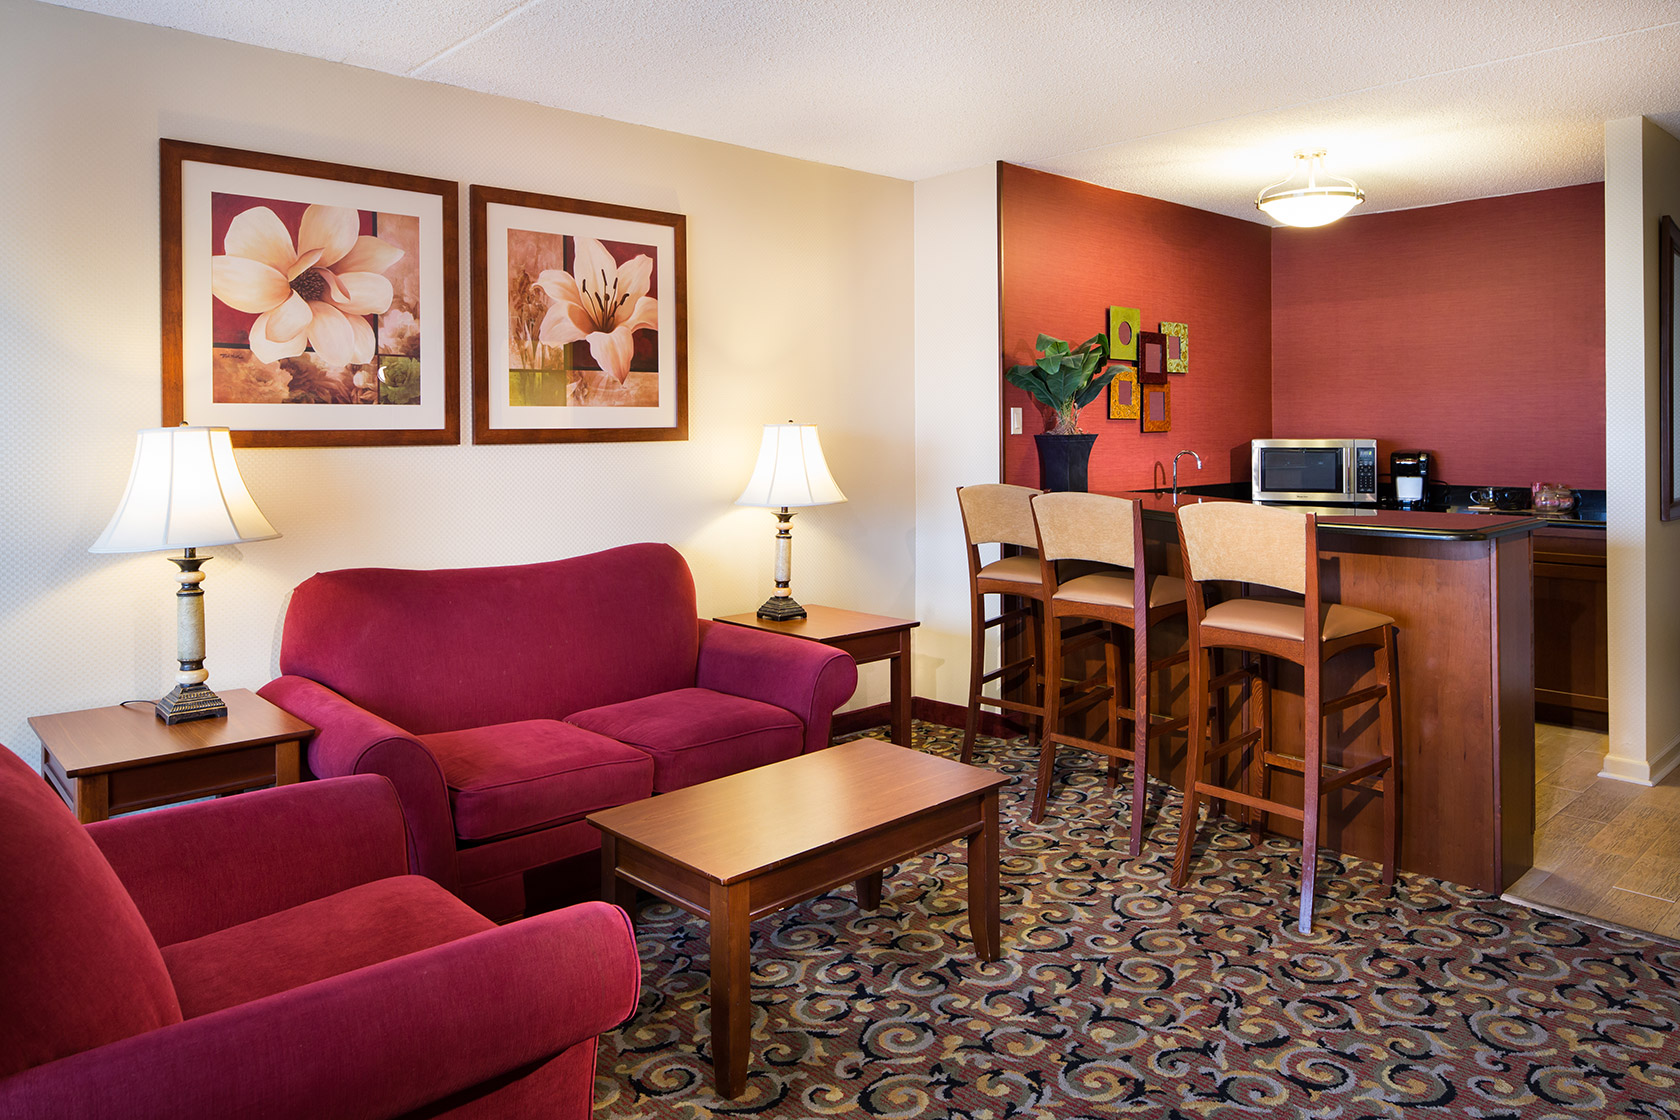 Fenwick Inn Rooms Amp Suites Ocean City Maryland Hotels